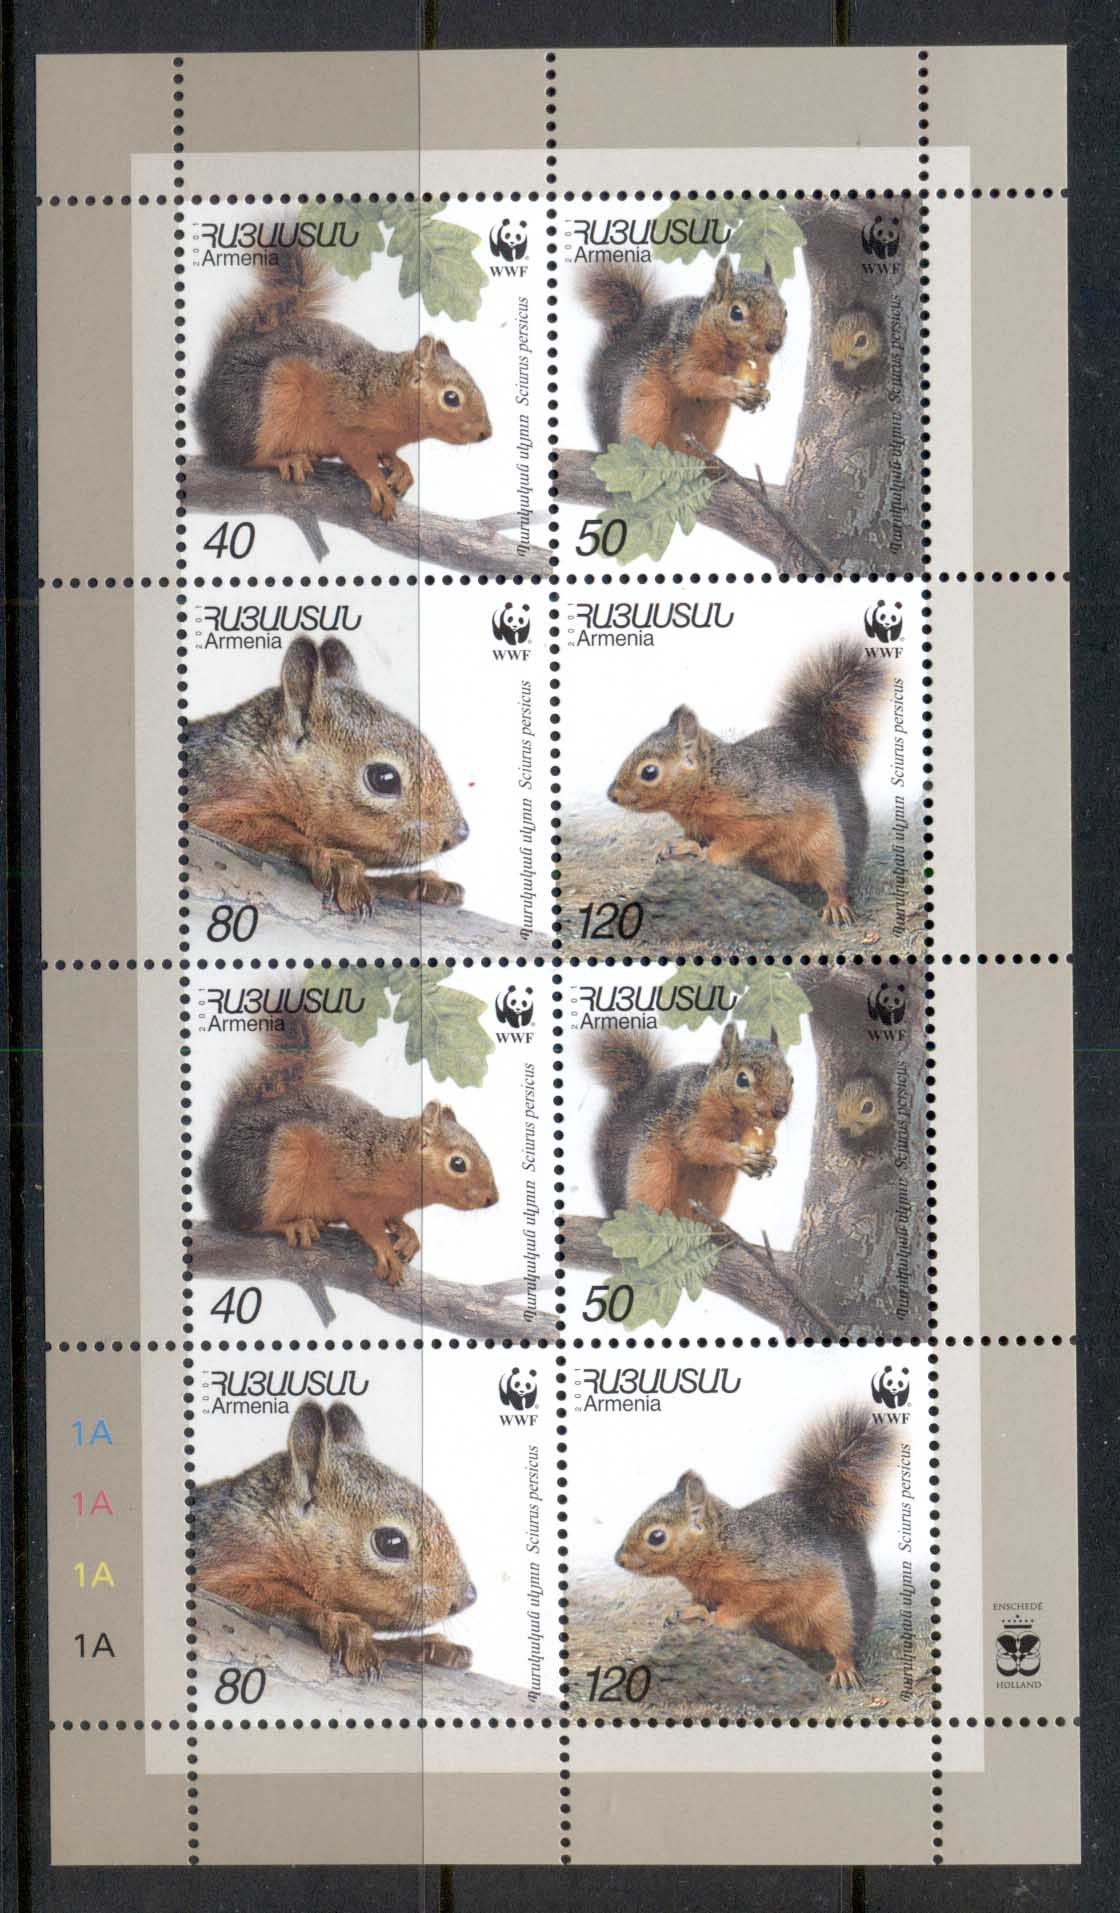 Armenia 2001 WWF Squirrel MS